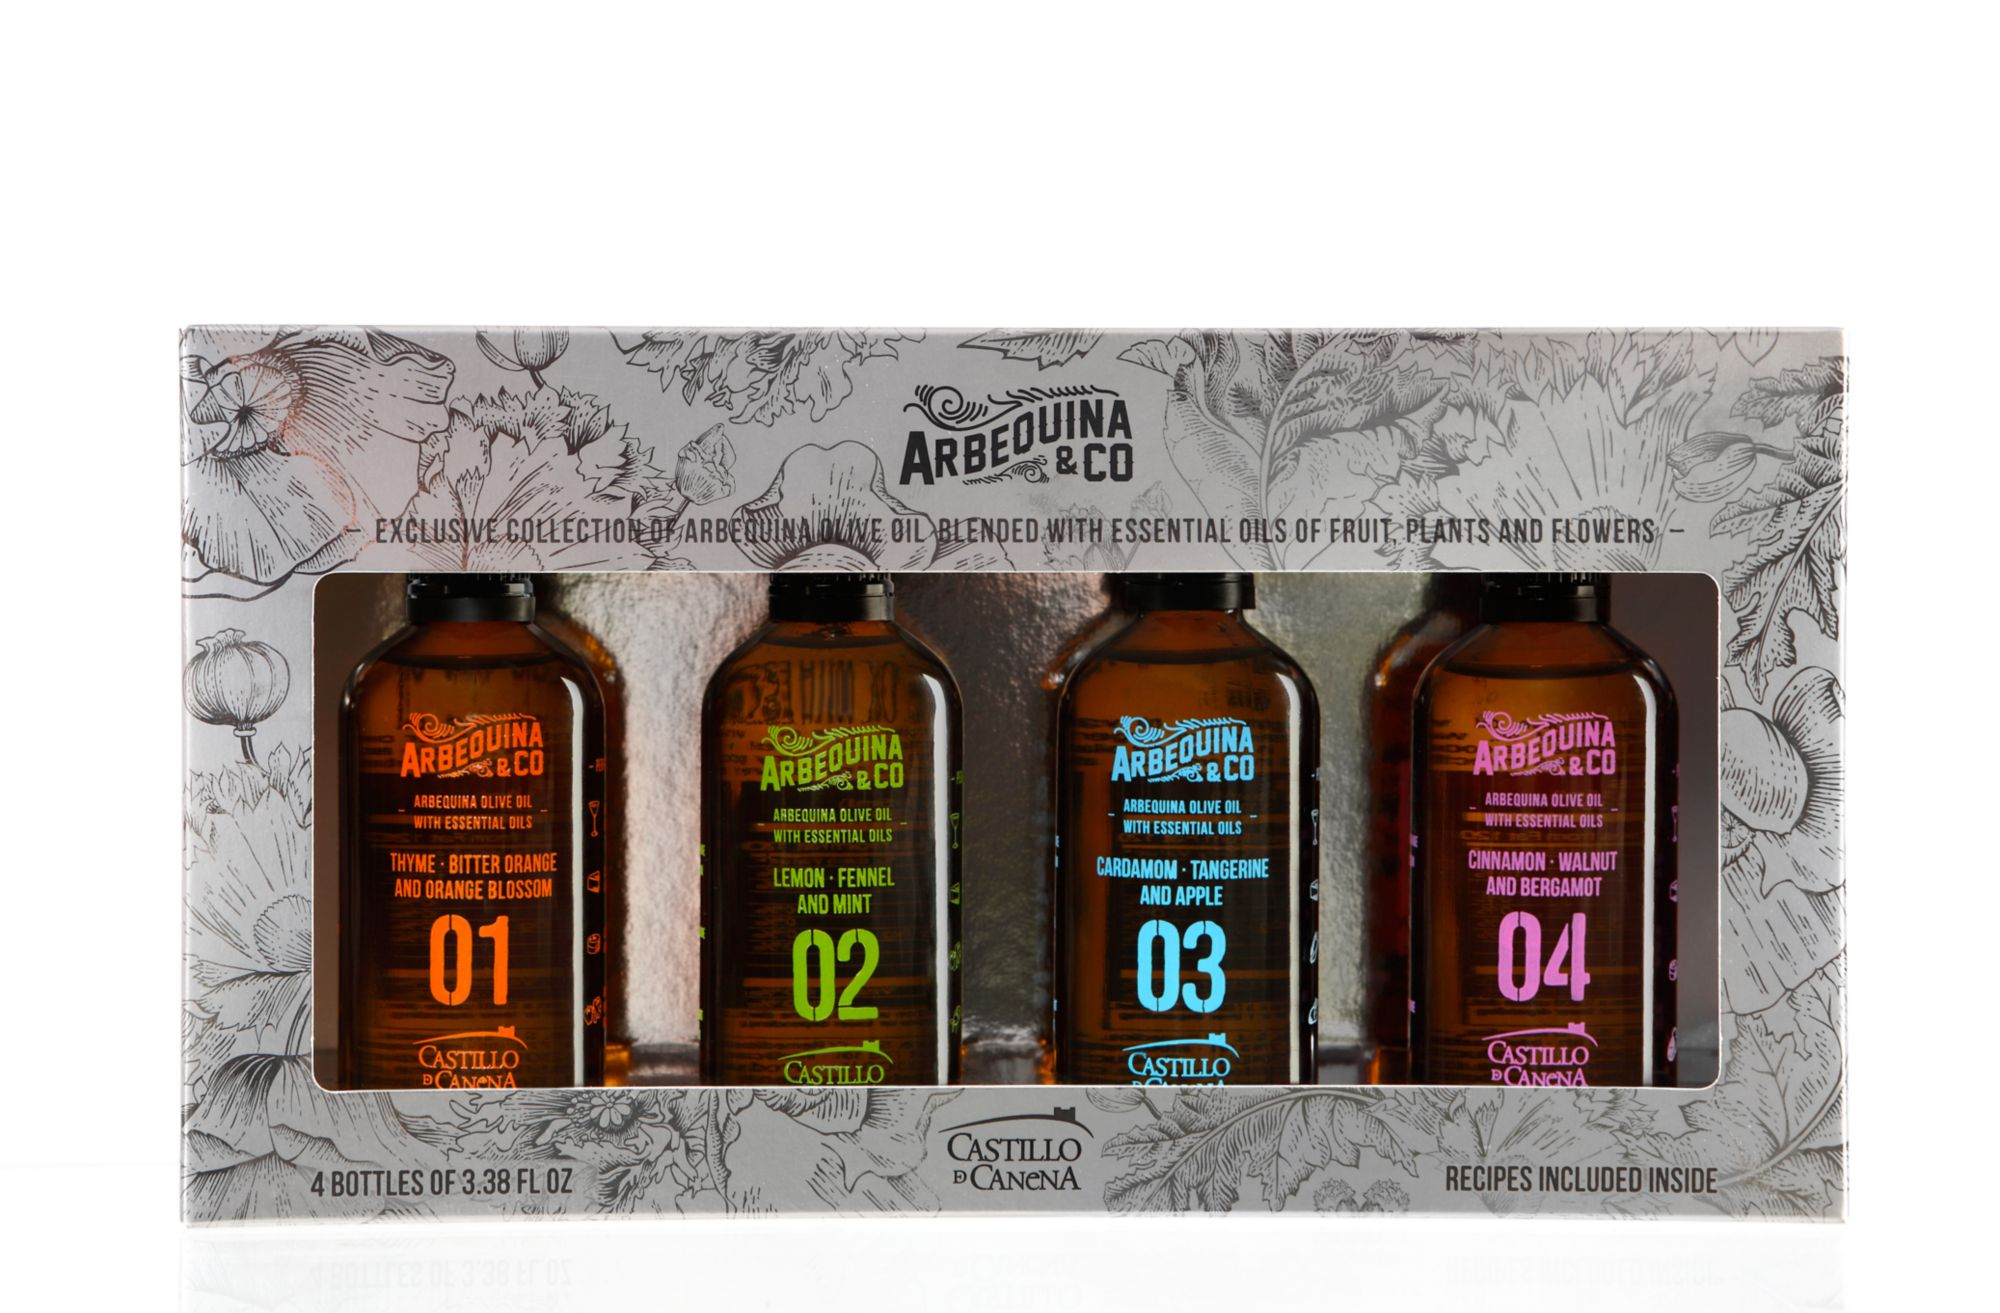 Image of Arbequina & Co Olive Oil Tasting Box